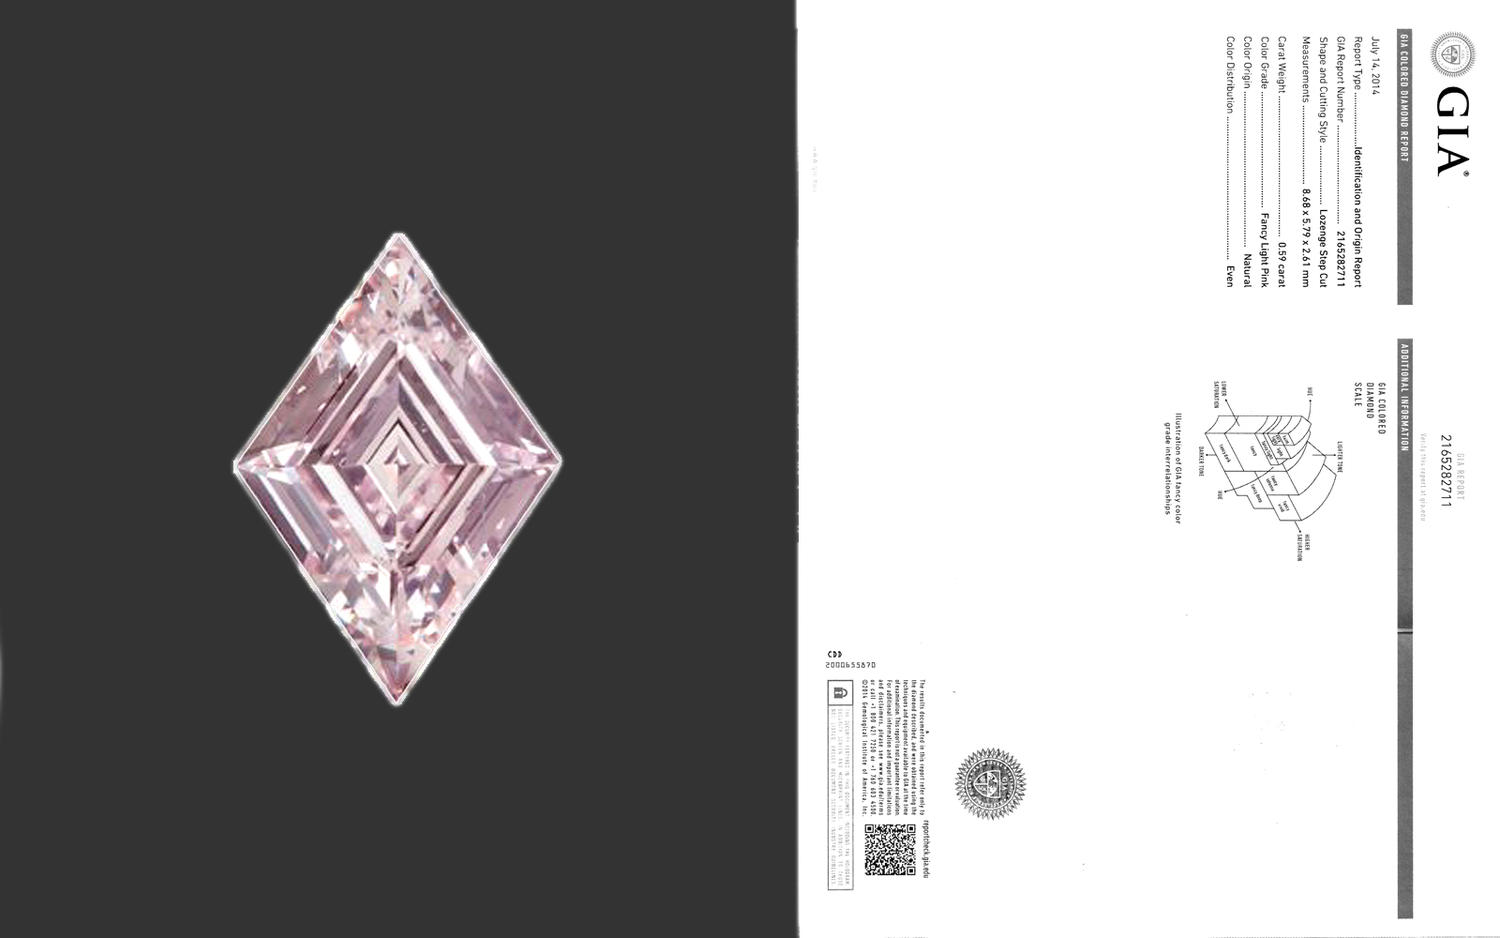 Numisbids 51 gallery february 2017 auction 10 february 2017 fancy light pink lozenge step cut diamond 059 carat extremely rare baby pink diamond with an exceptional and nvjuhfo Gallery